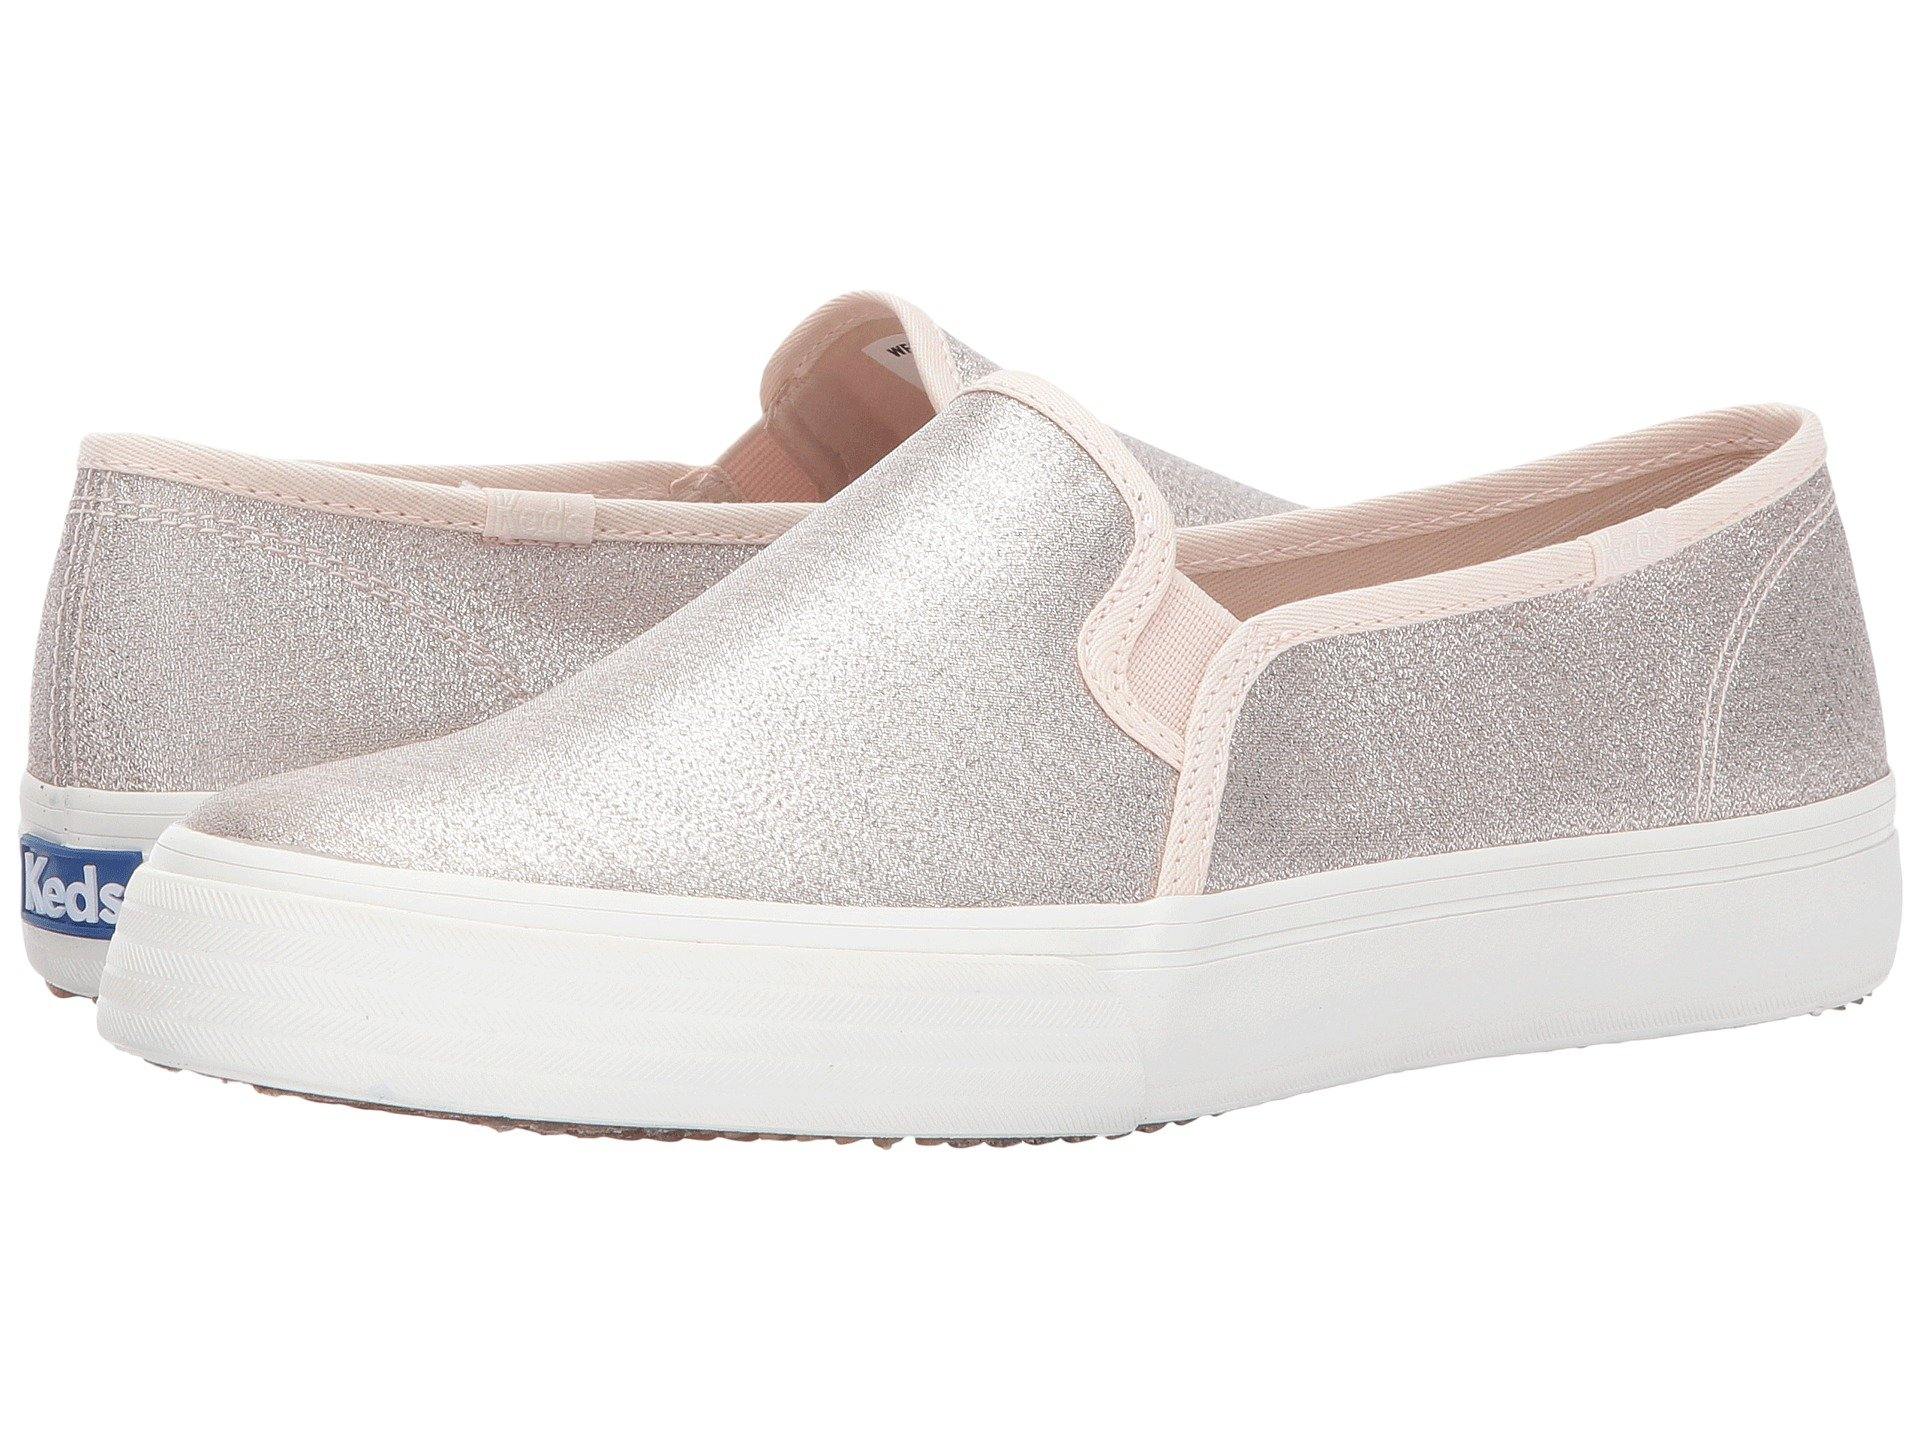 Keds Double Decker Lurex Sneaker